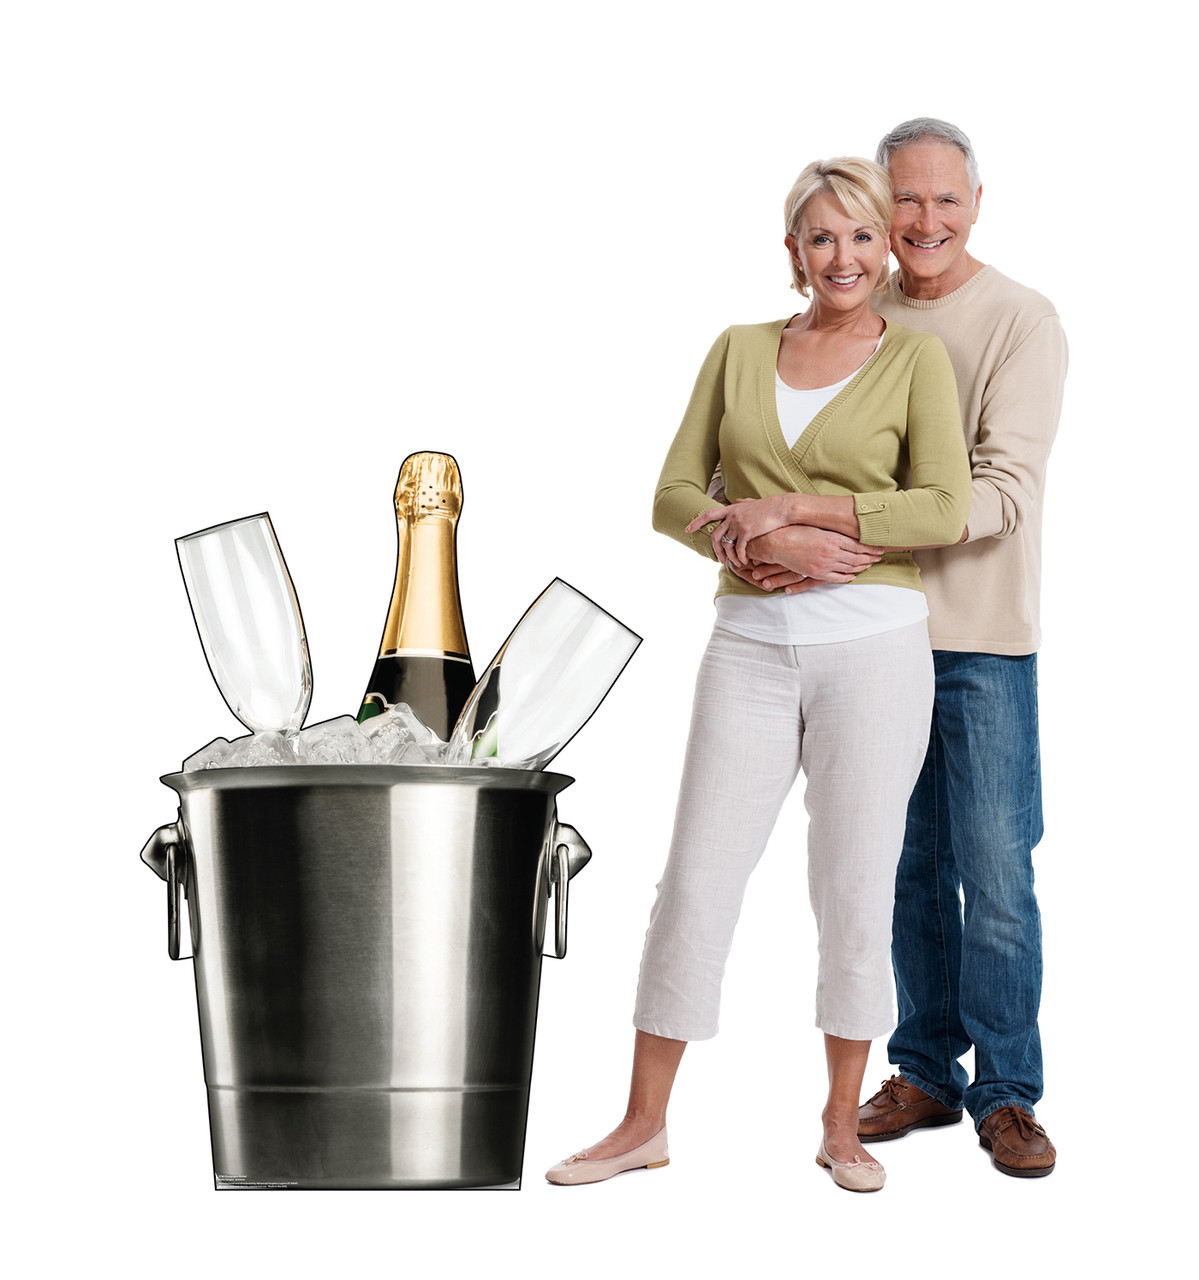 Life-size cardboard standee of a Champagne Bucket with models.